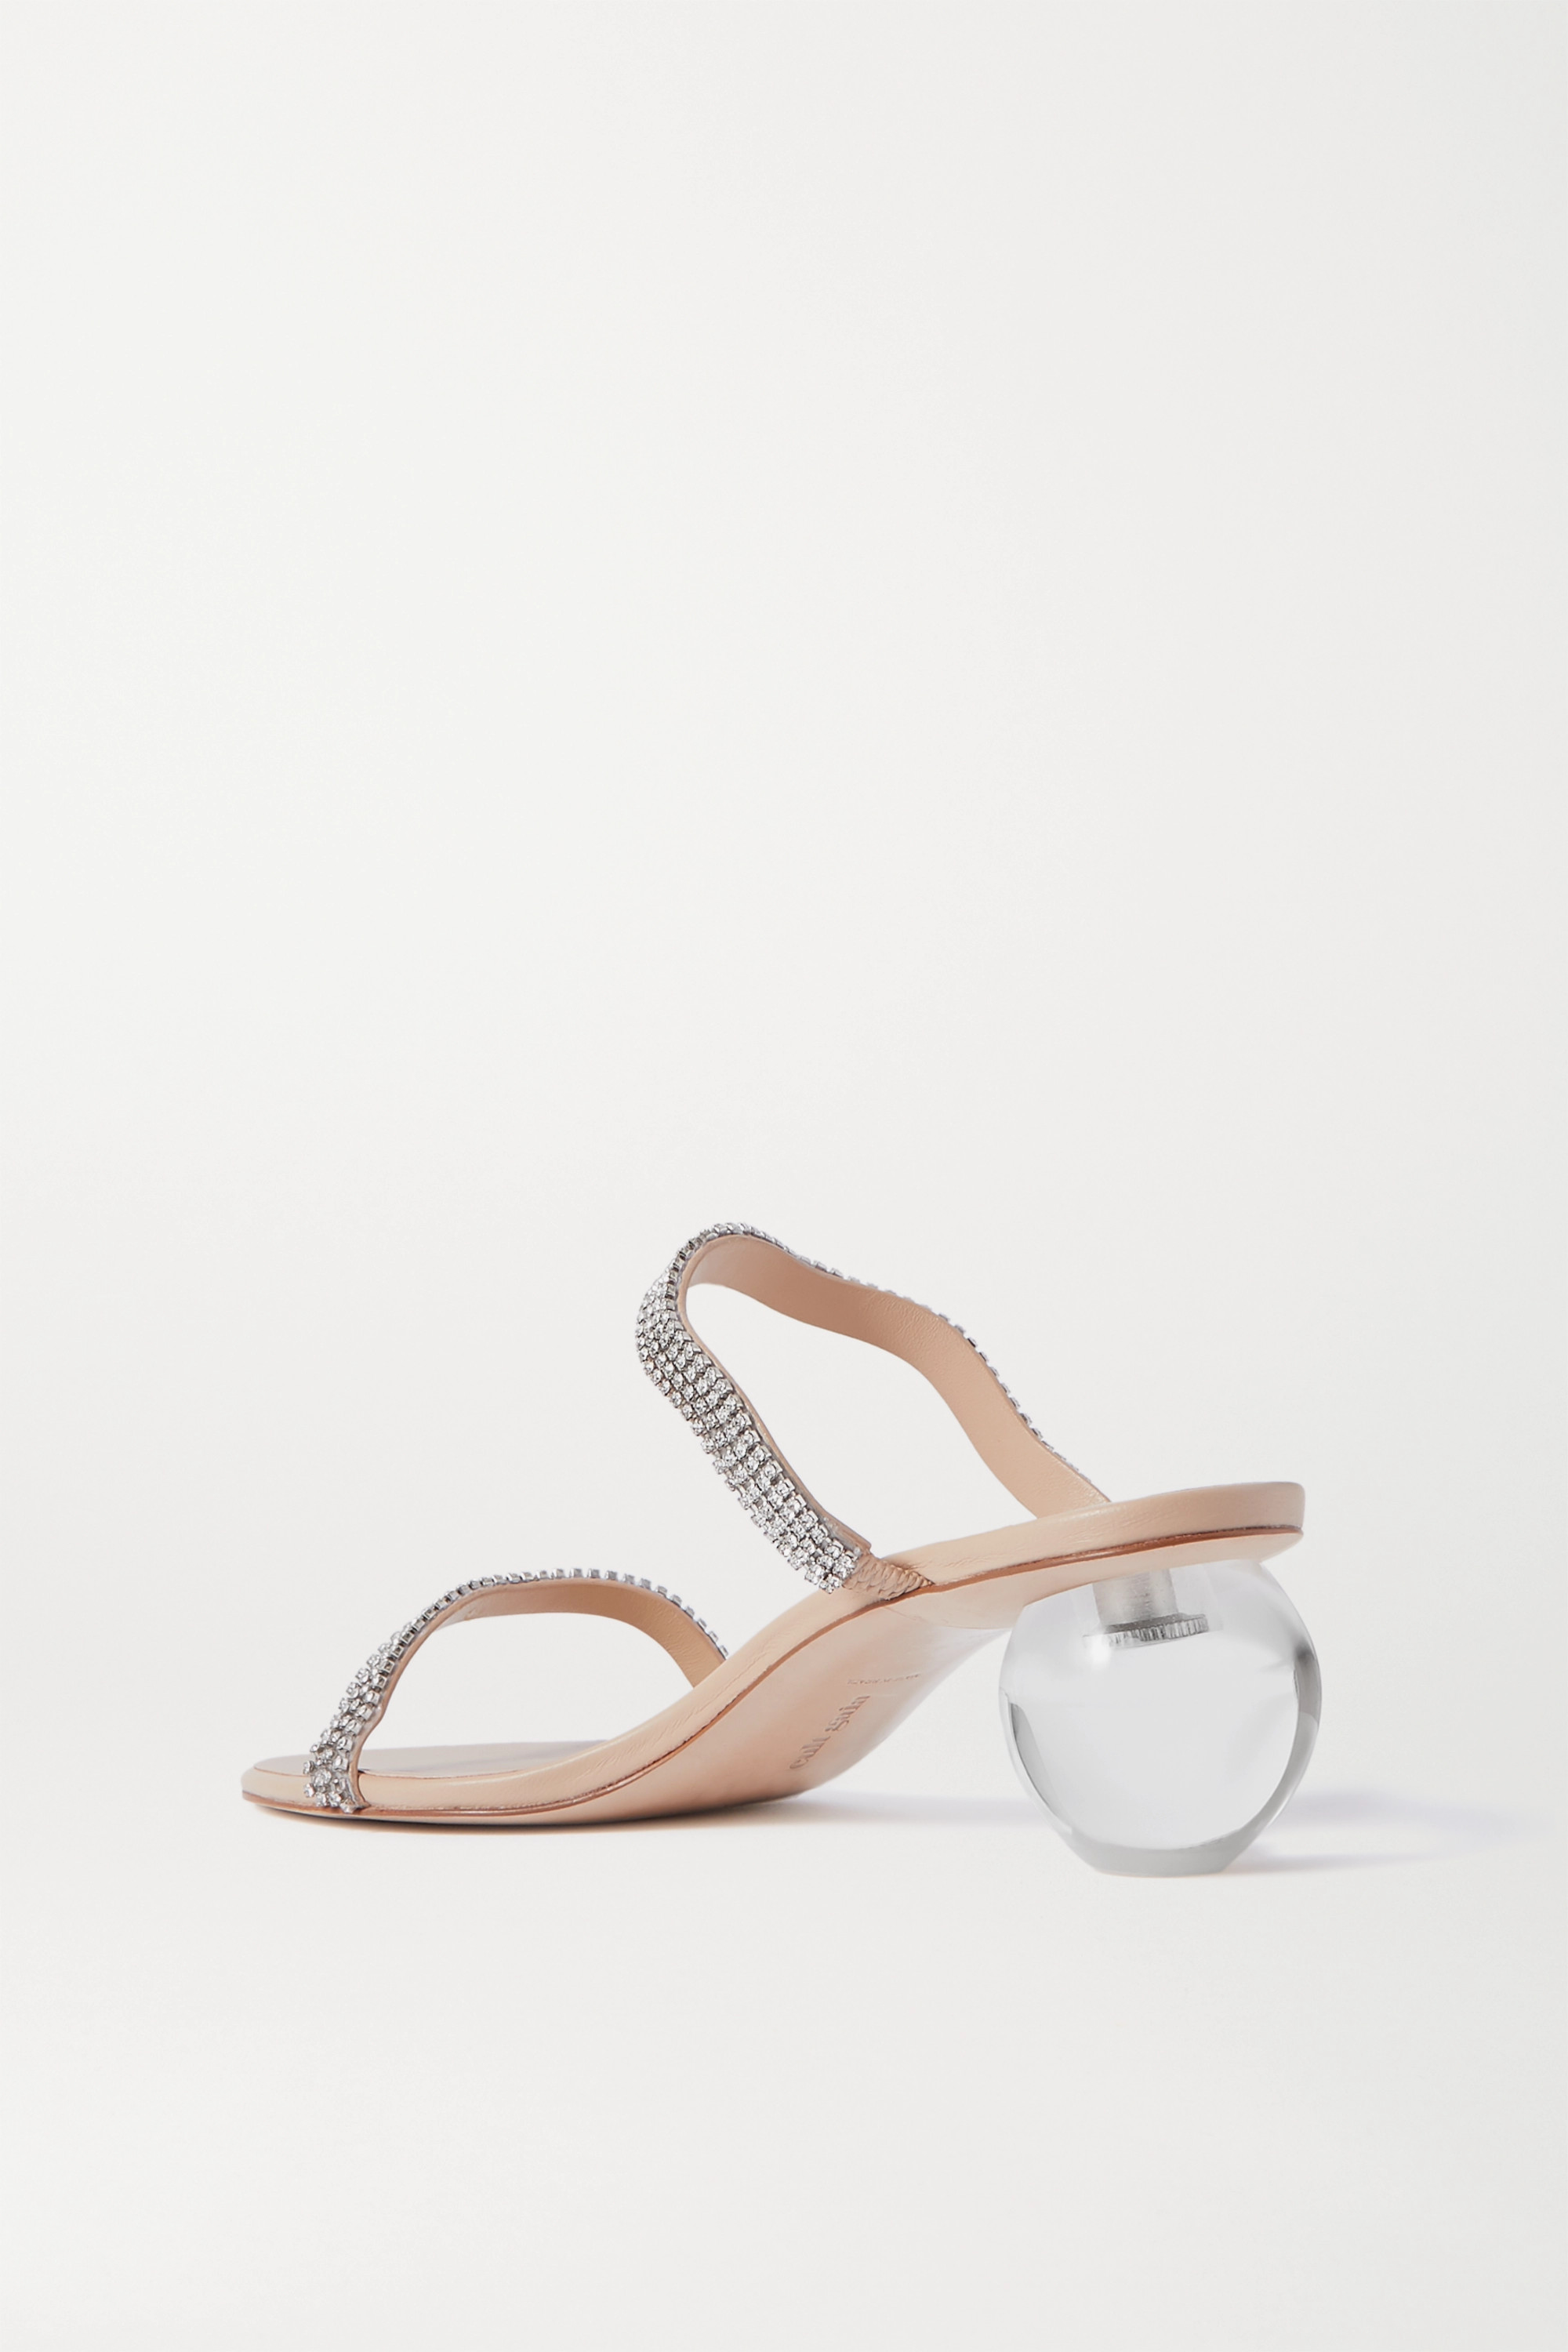 Cult Gaia Audrey crystal-embellished leather mules